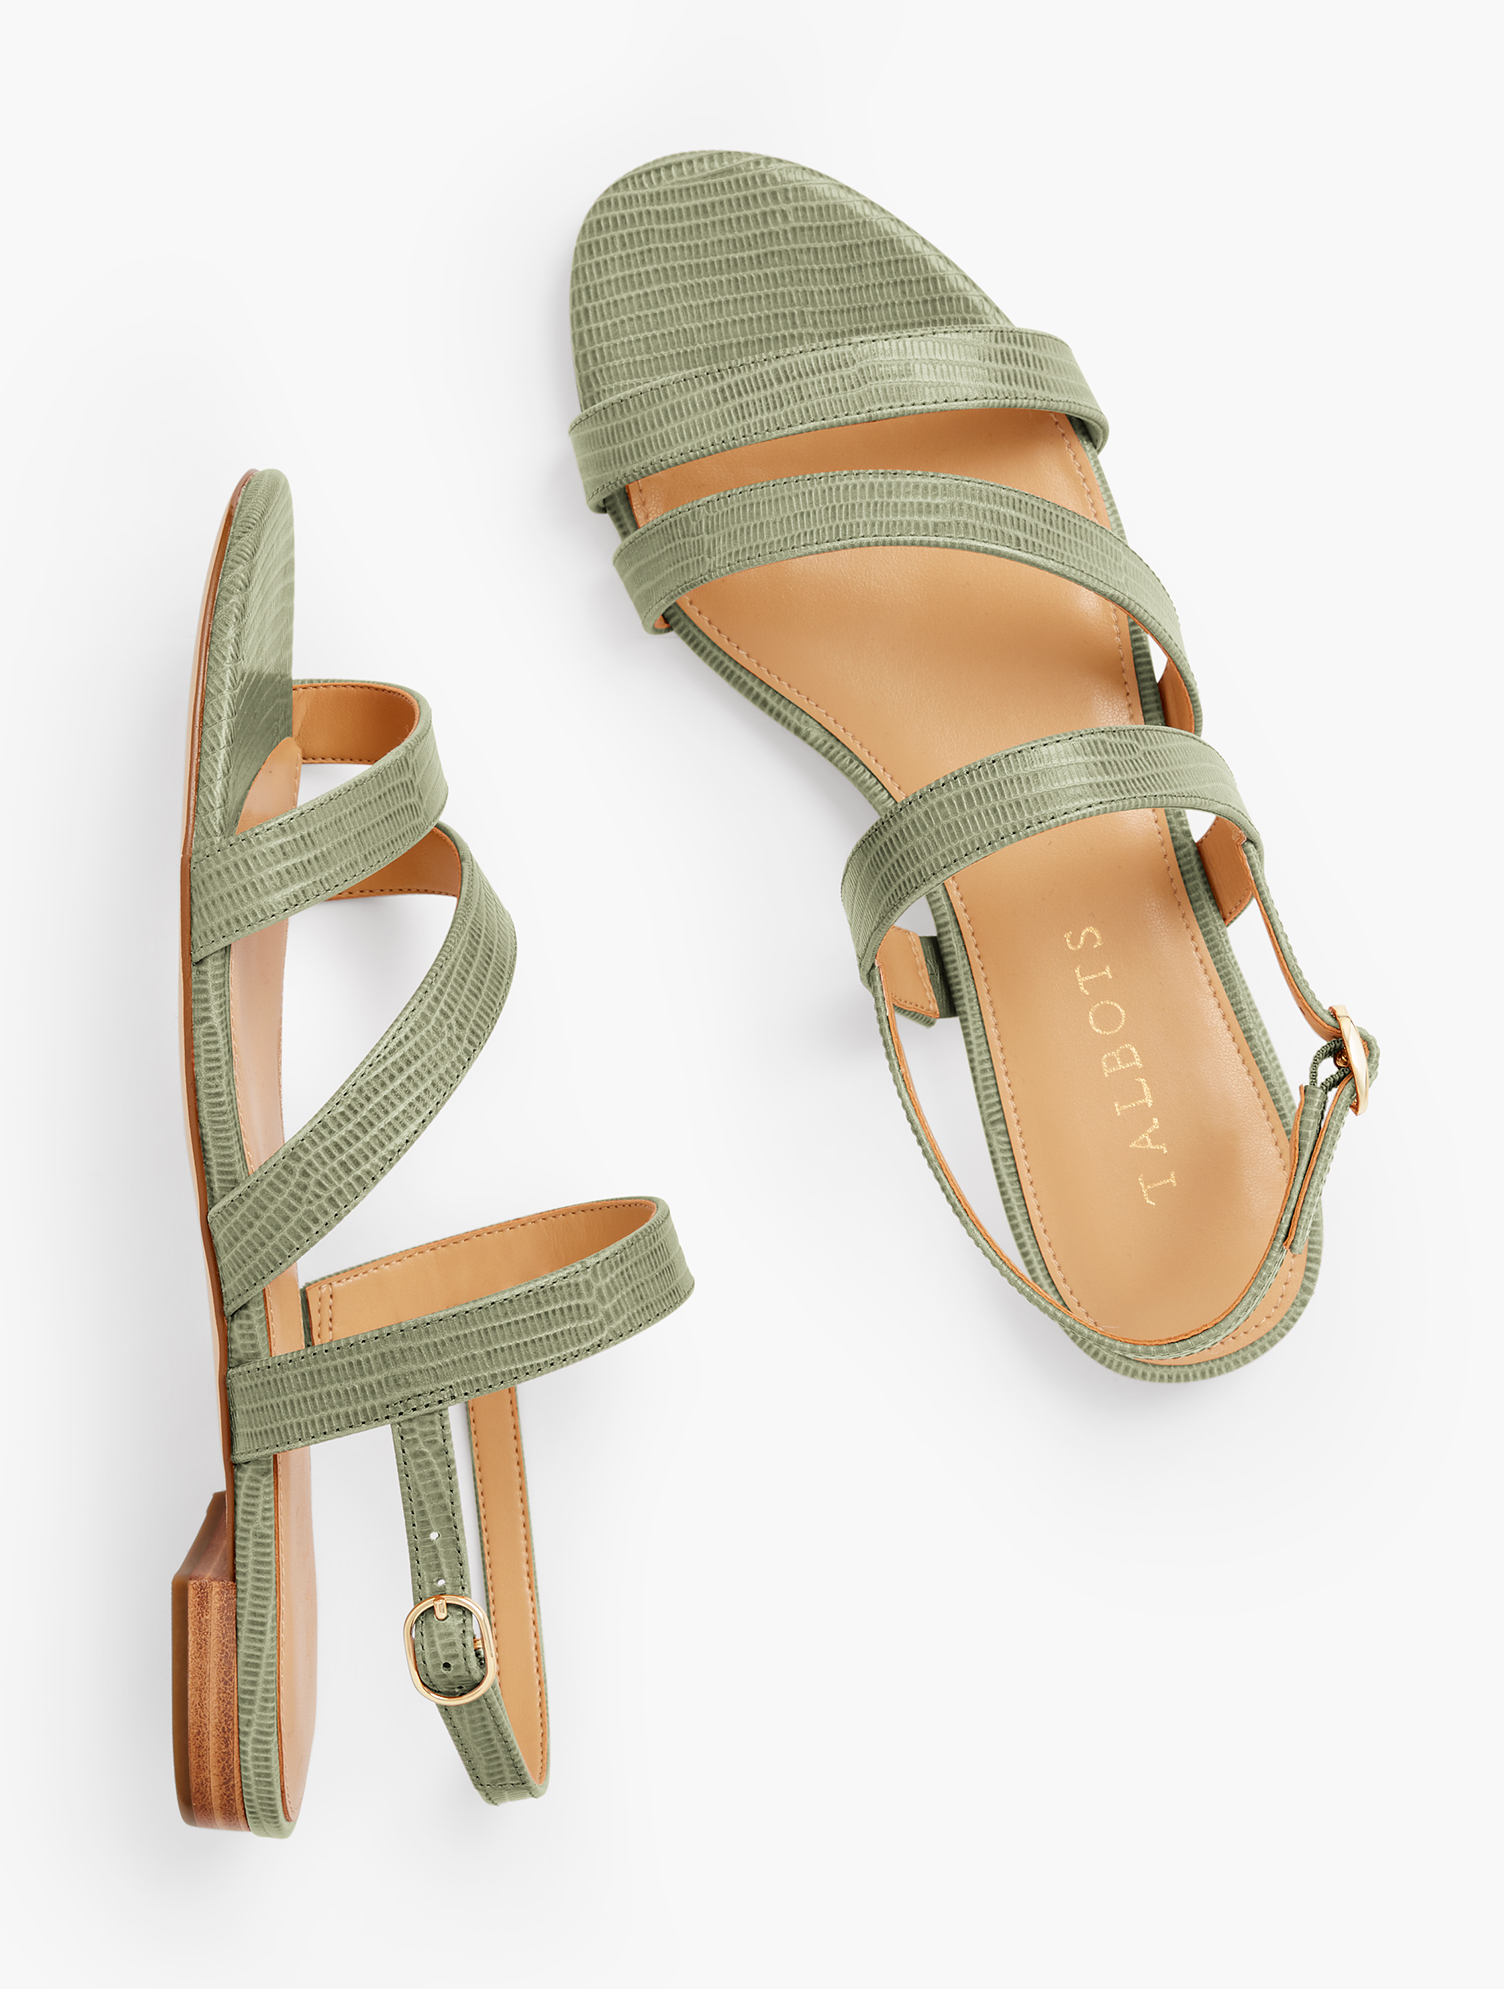 Our Keri Multi Strap Sandals. Ultra chic. Ultra comfortable. With memory foam footbed. Features Gift Box/Gift Wrap is not available for this item 1/2 inches heel Flexible Non Skid Outsole 9k Shiny Gold Hardware 3Mm Memory Foam Footbed Imported Material: 100% Leather Keri Multi Strap Sandals - Sagebrush - 9M Talbots